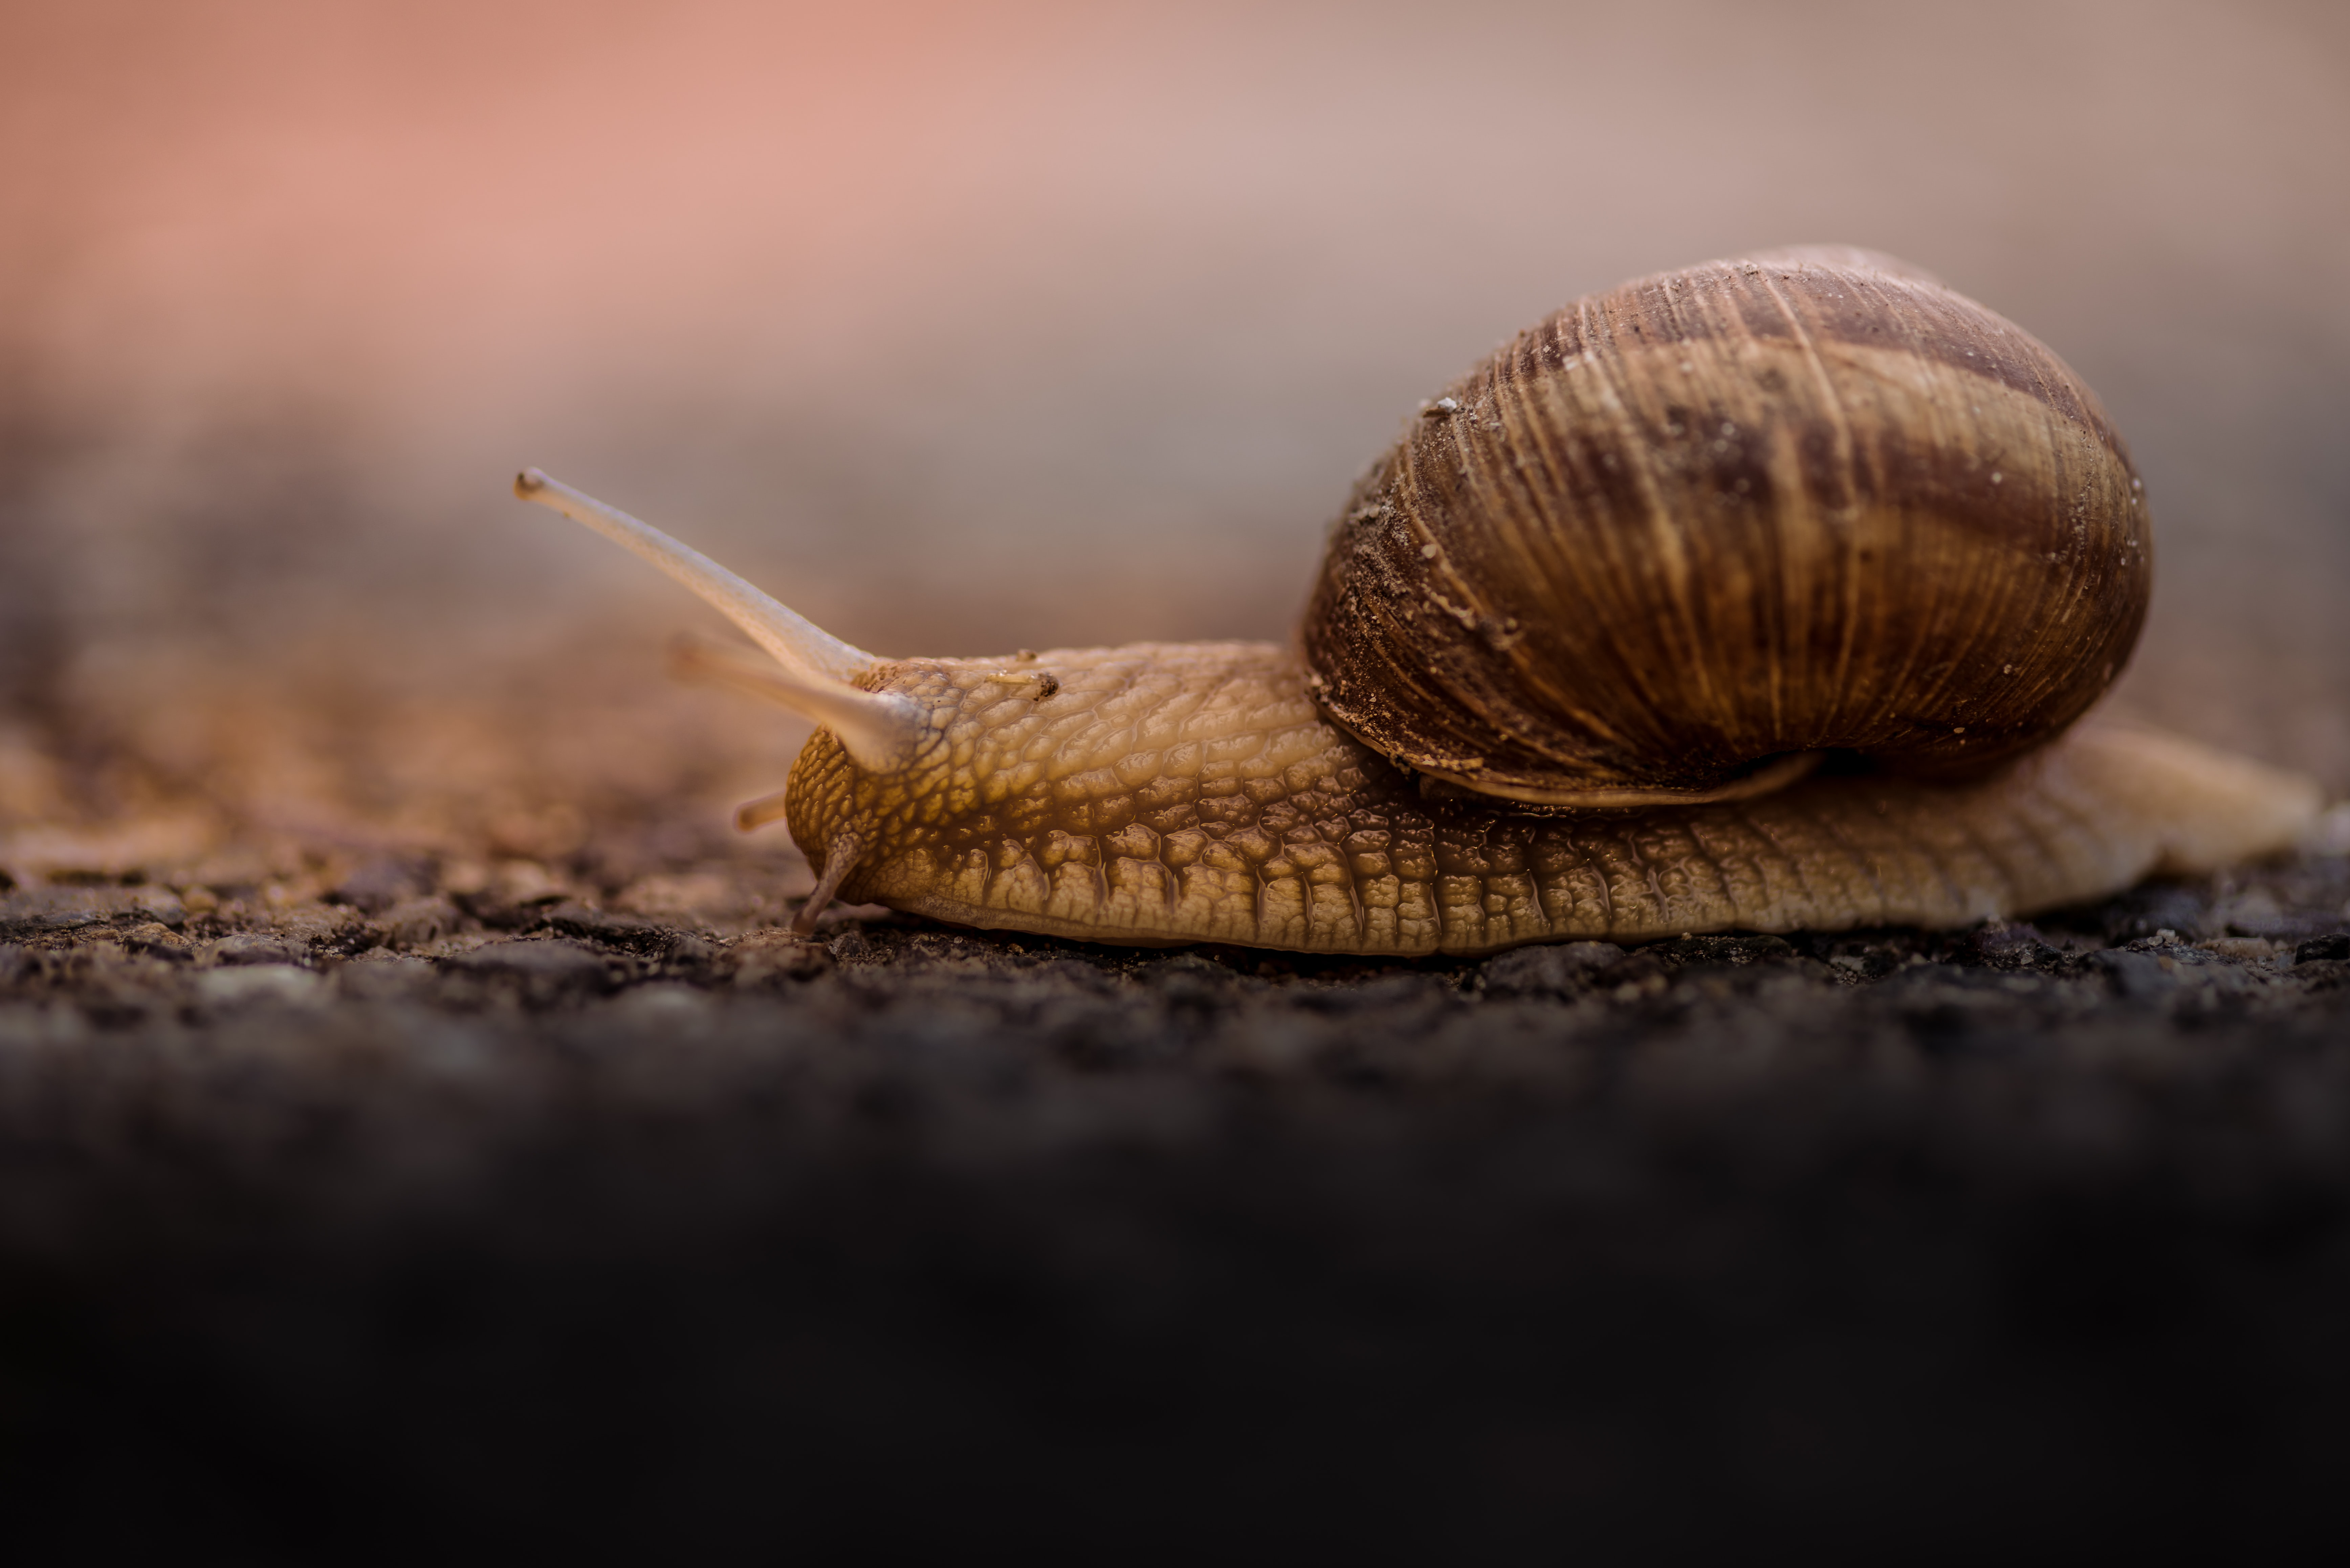 Brown snail in its shell slowly inches across the asphalt